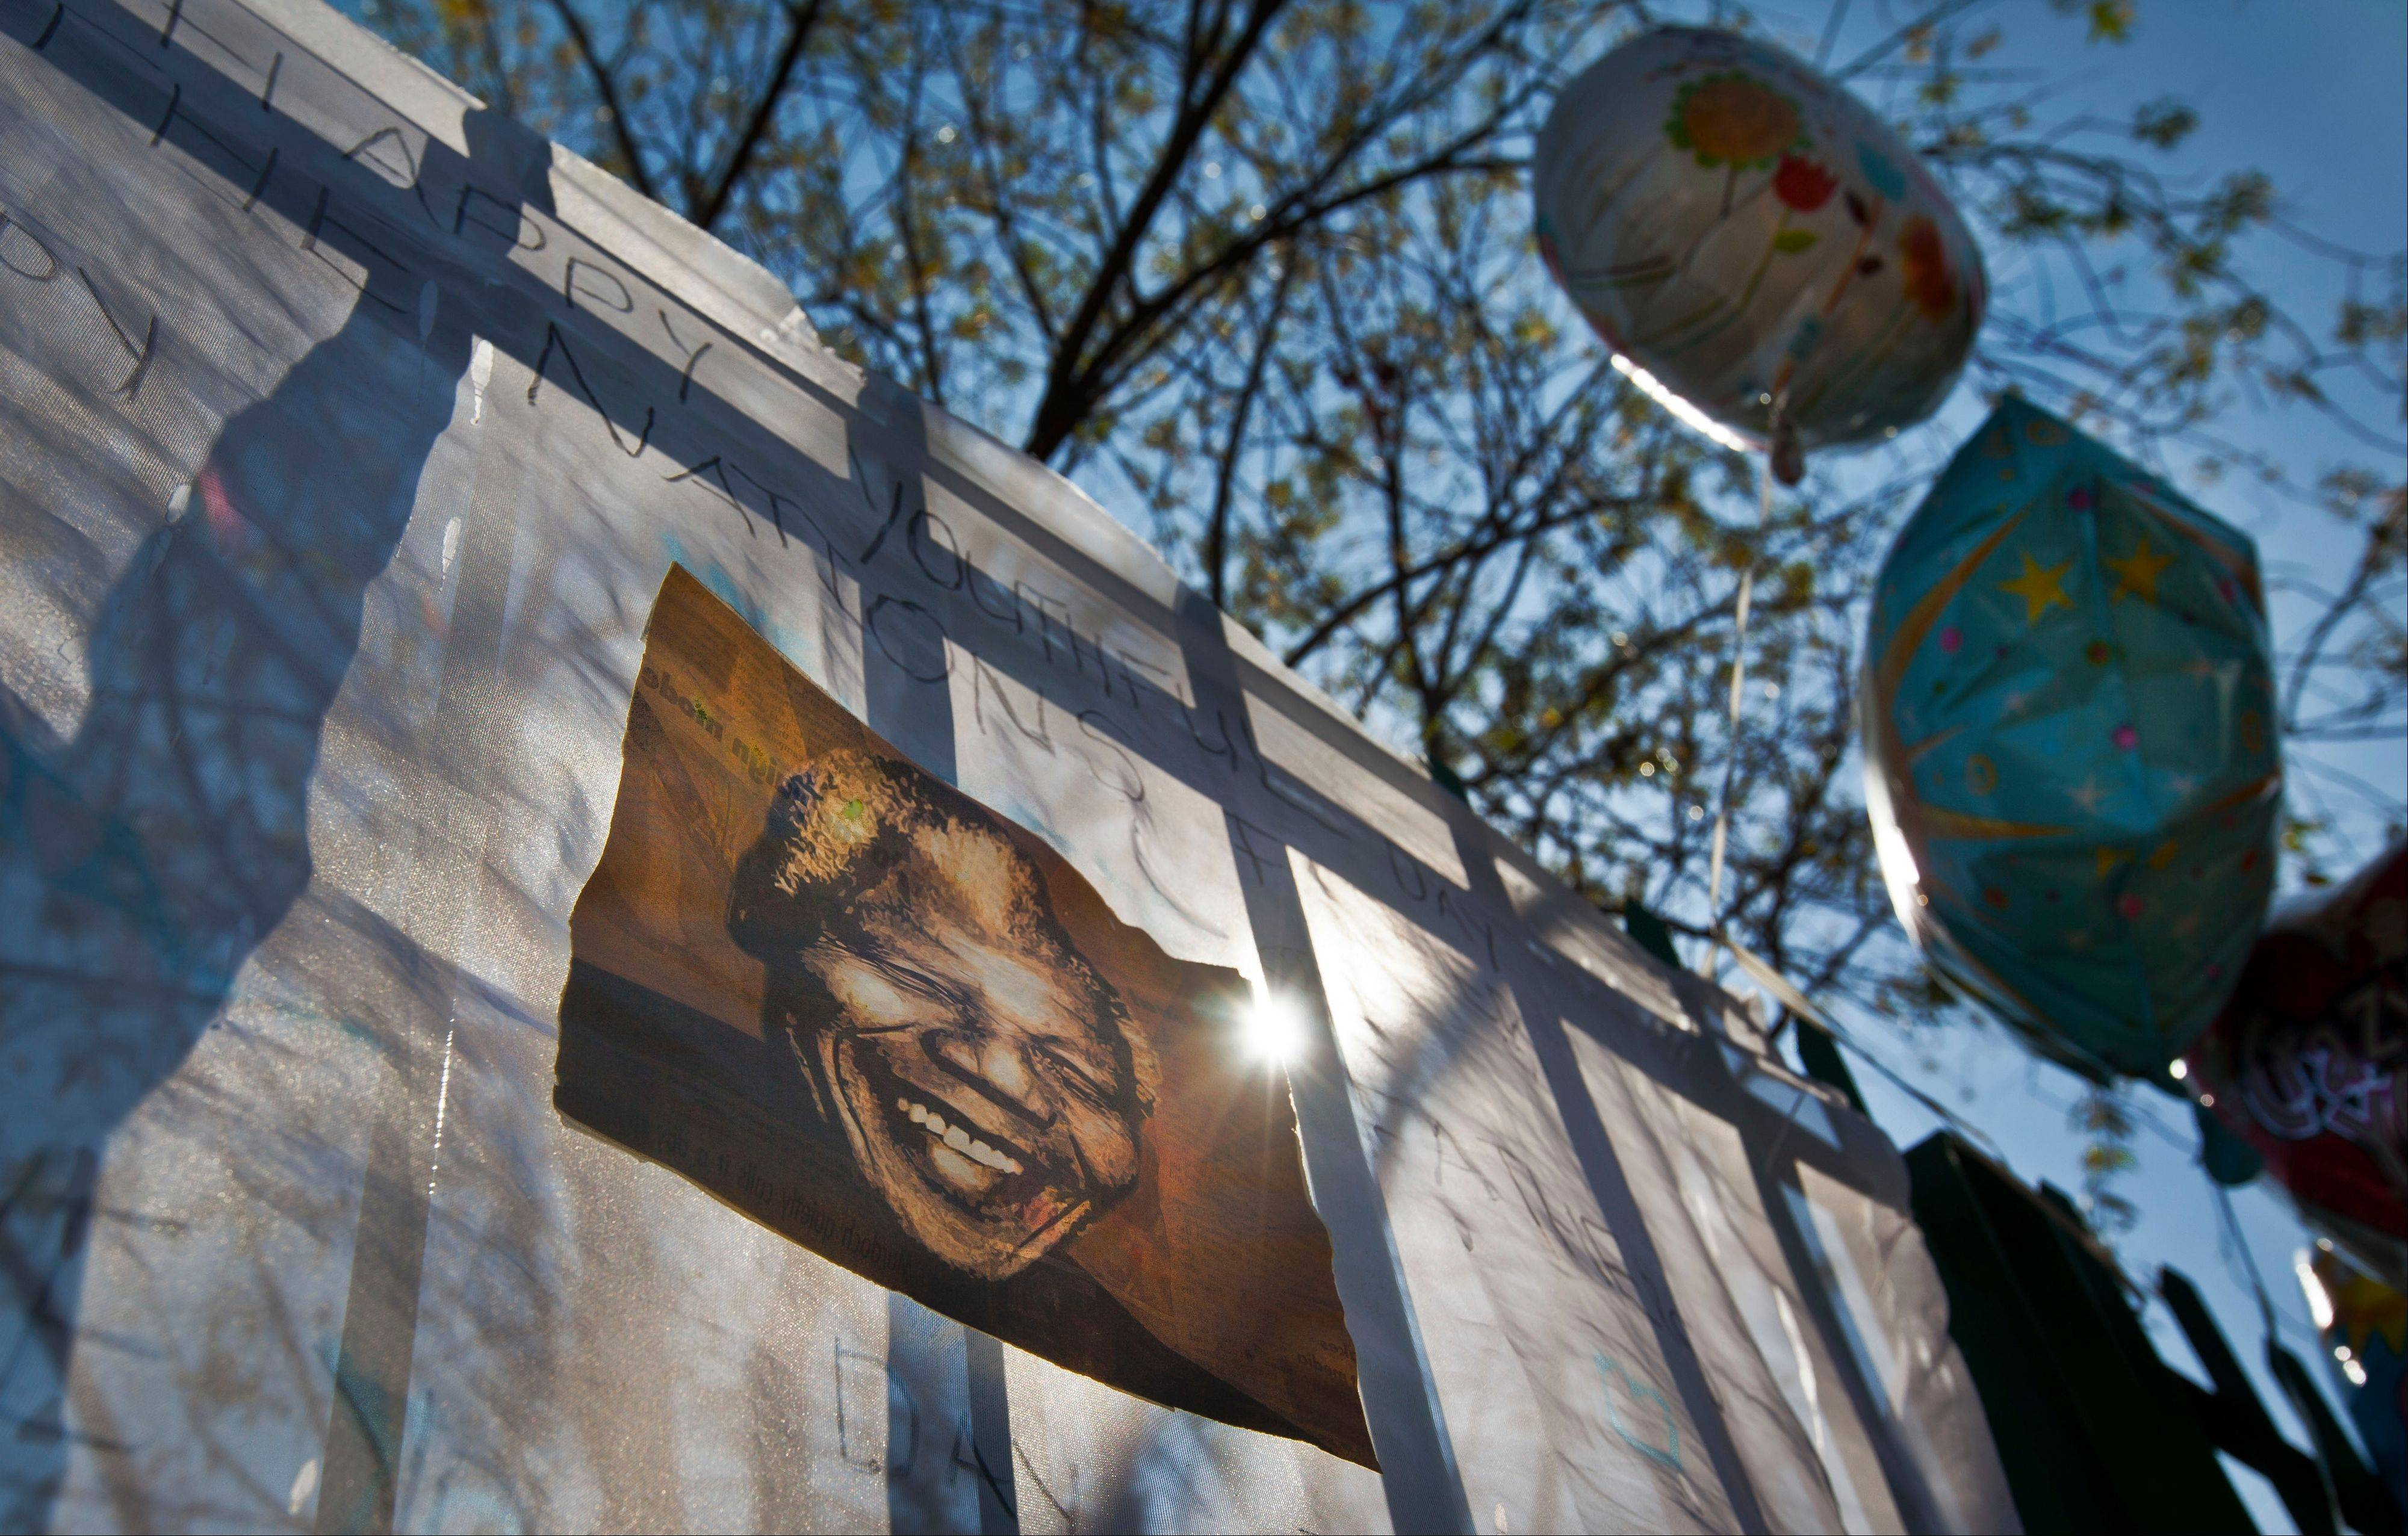 A get-well message carrying a photo of Nelson Mandela hangs on the railings at the entrance to the Mediclinic Heart Hospital where the former South African President is being treated in Pretoria, South Africa Tuesday, June 25, 2013. South Africans passed by Nelson Mandela�s home in a Johannesburg suburb on Tuesday and said they were praying for the 94-year-old after the President Jacob Zuma urged the country to send their wishes to the man he called the �father of democracy,� who remained in critical condition.